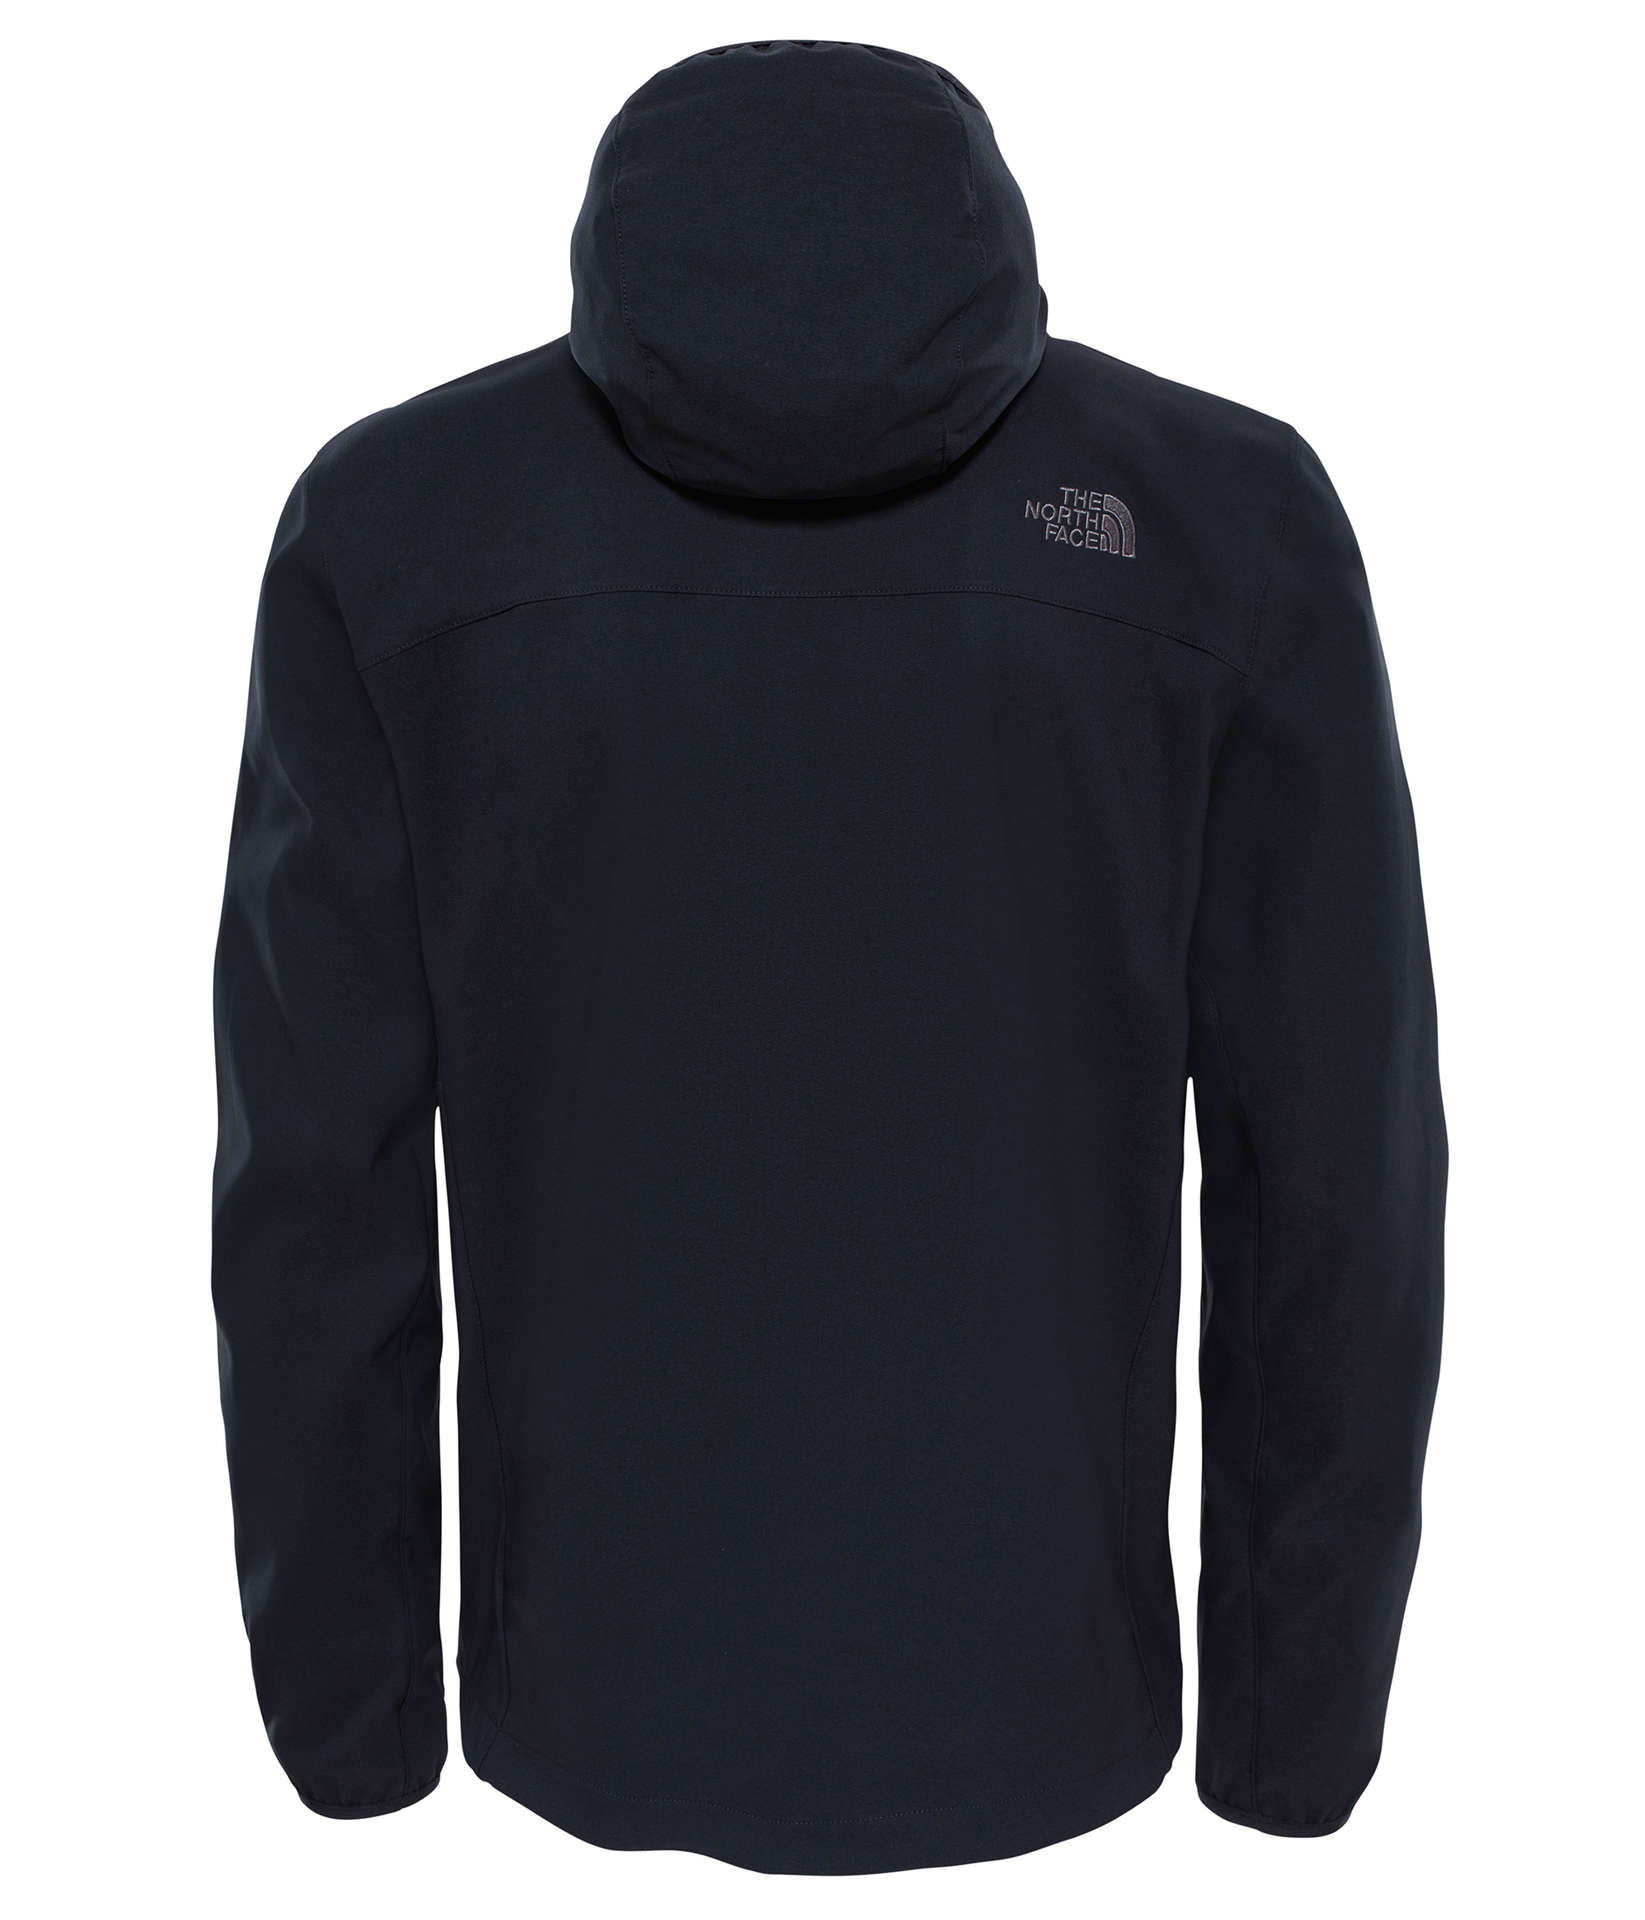 The North Face Nimble Hoodie Zwart Heren